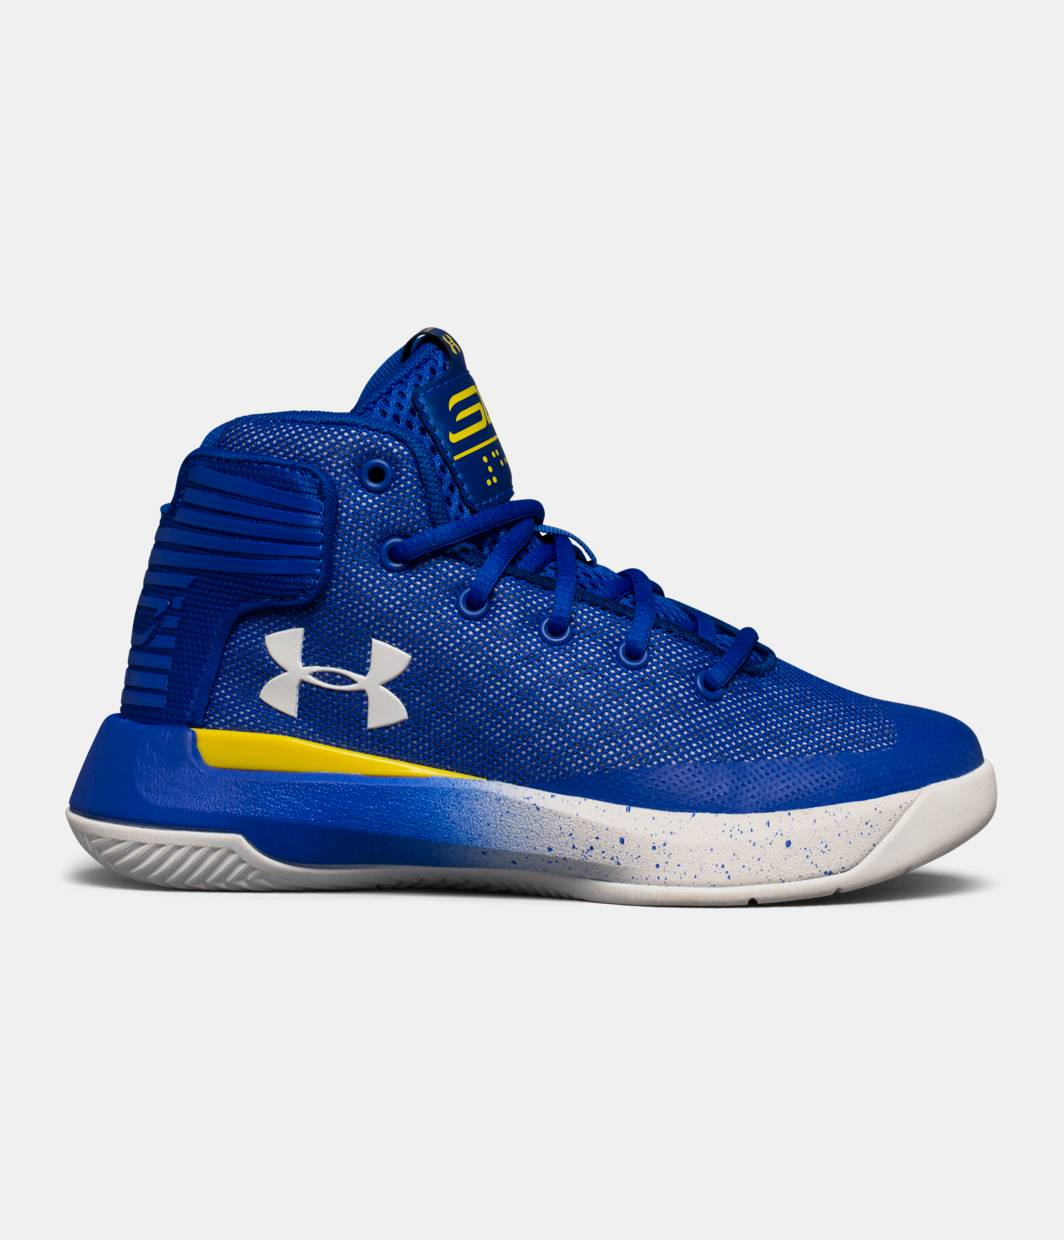 Basketball Shoes With The Best Support